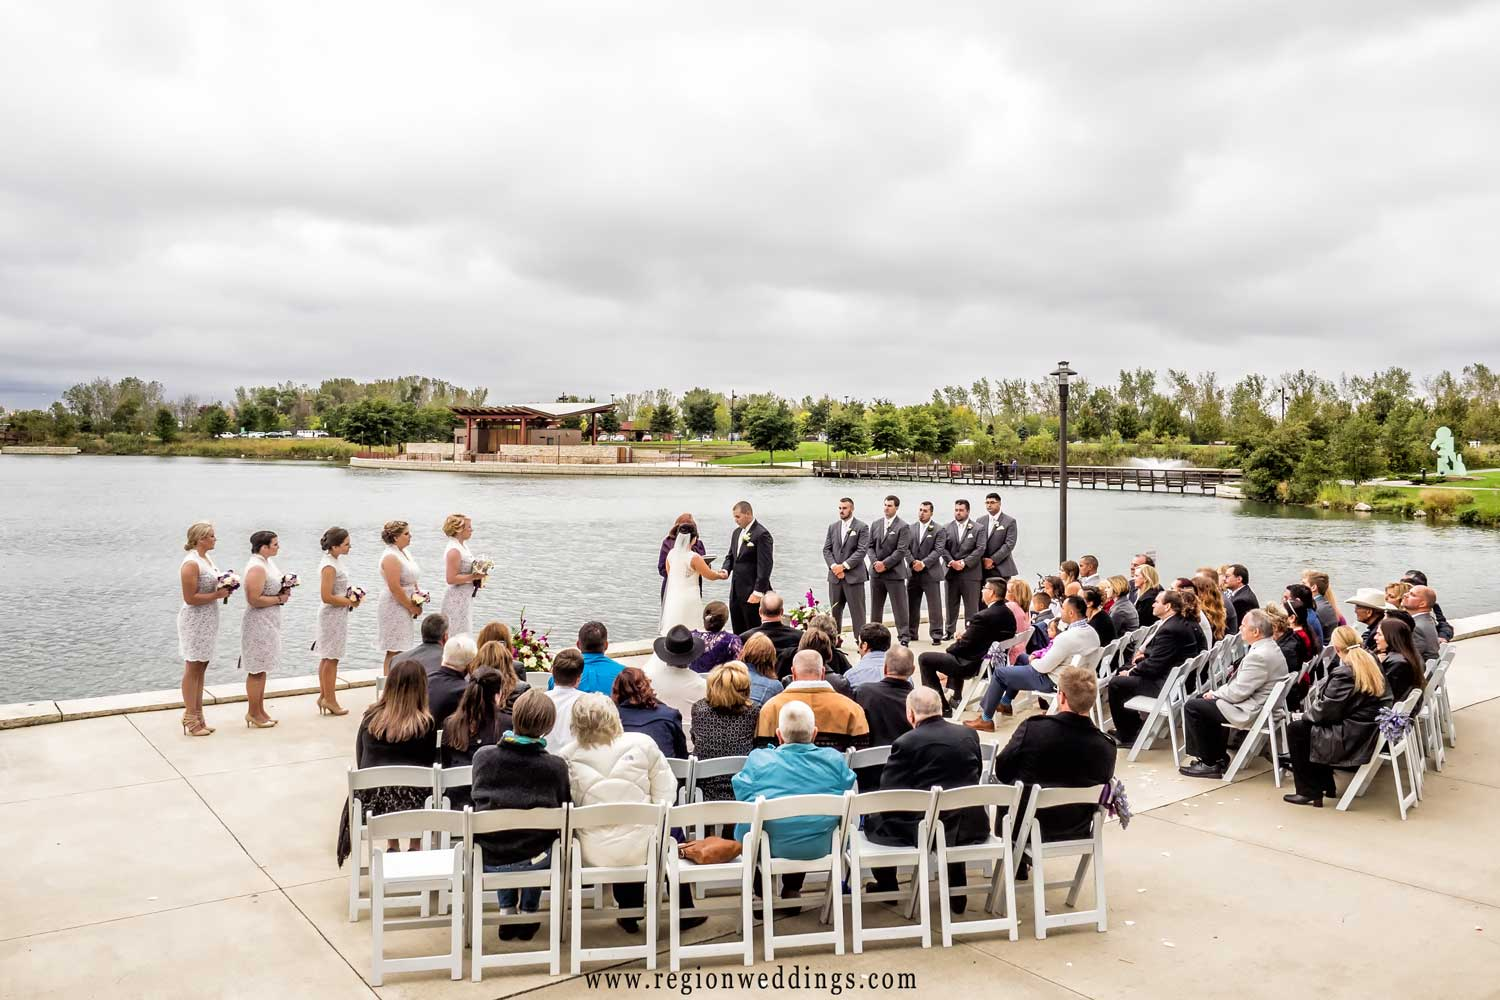 Outdoor wedding ceremony on the terrace at Centennial Park in Munster, Indiana.